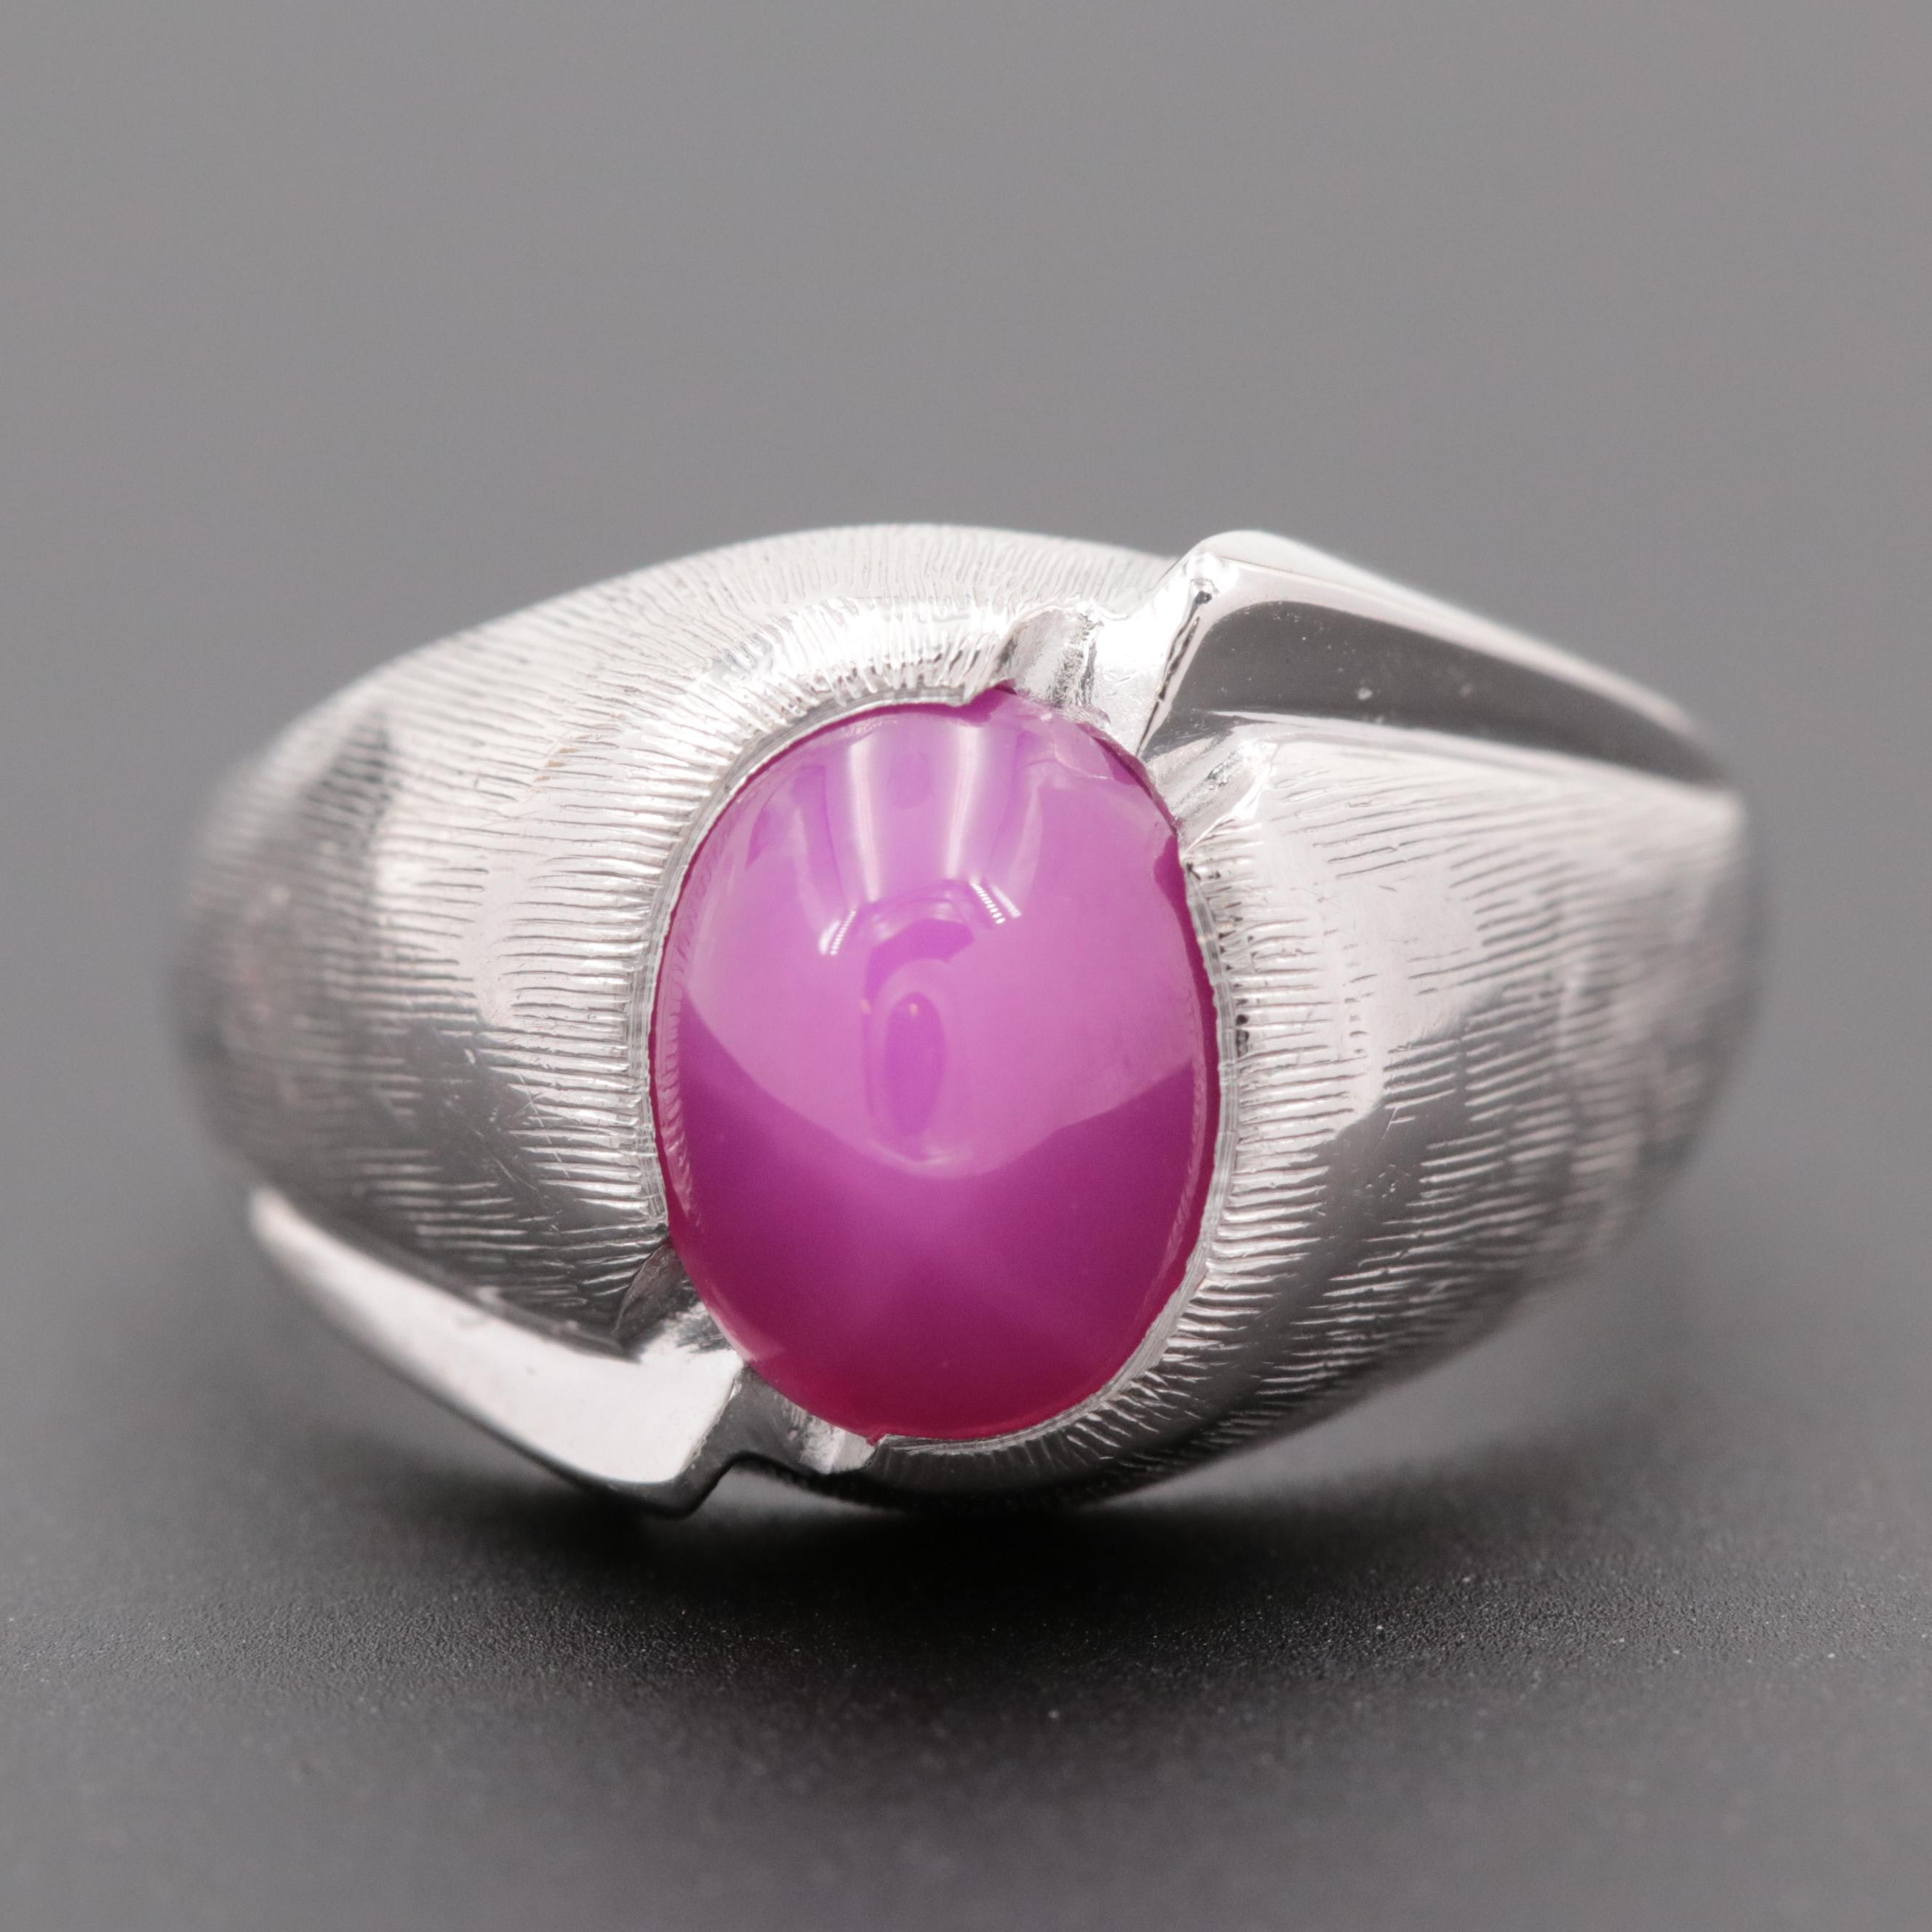 Vintage 14K White Gold Synthetic Star Ruby Ring with Florentine Finish